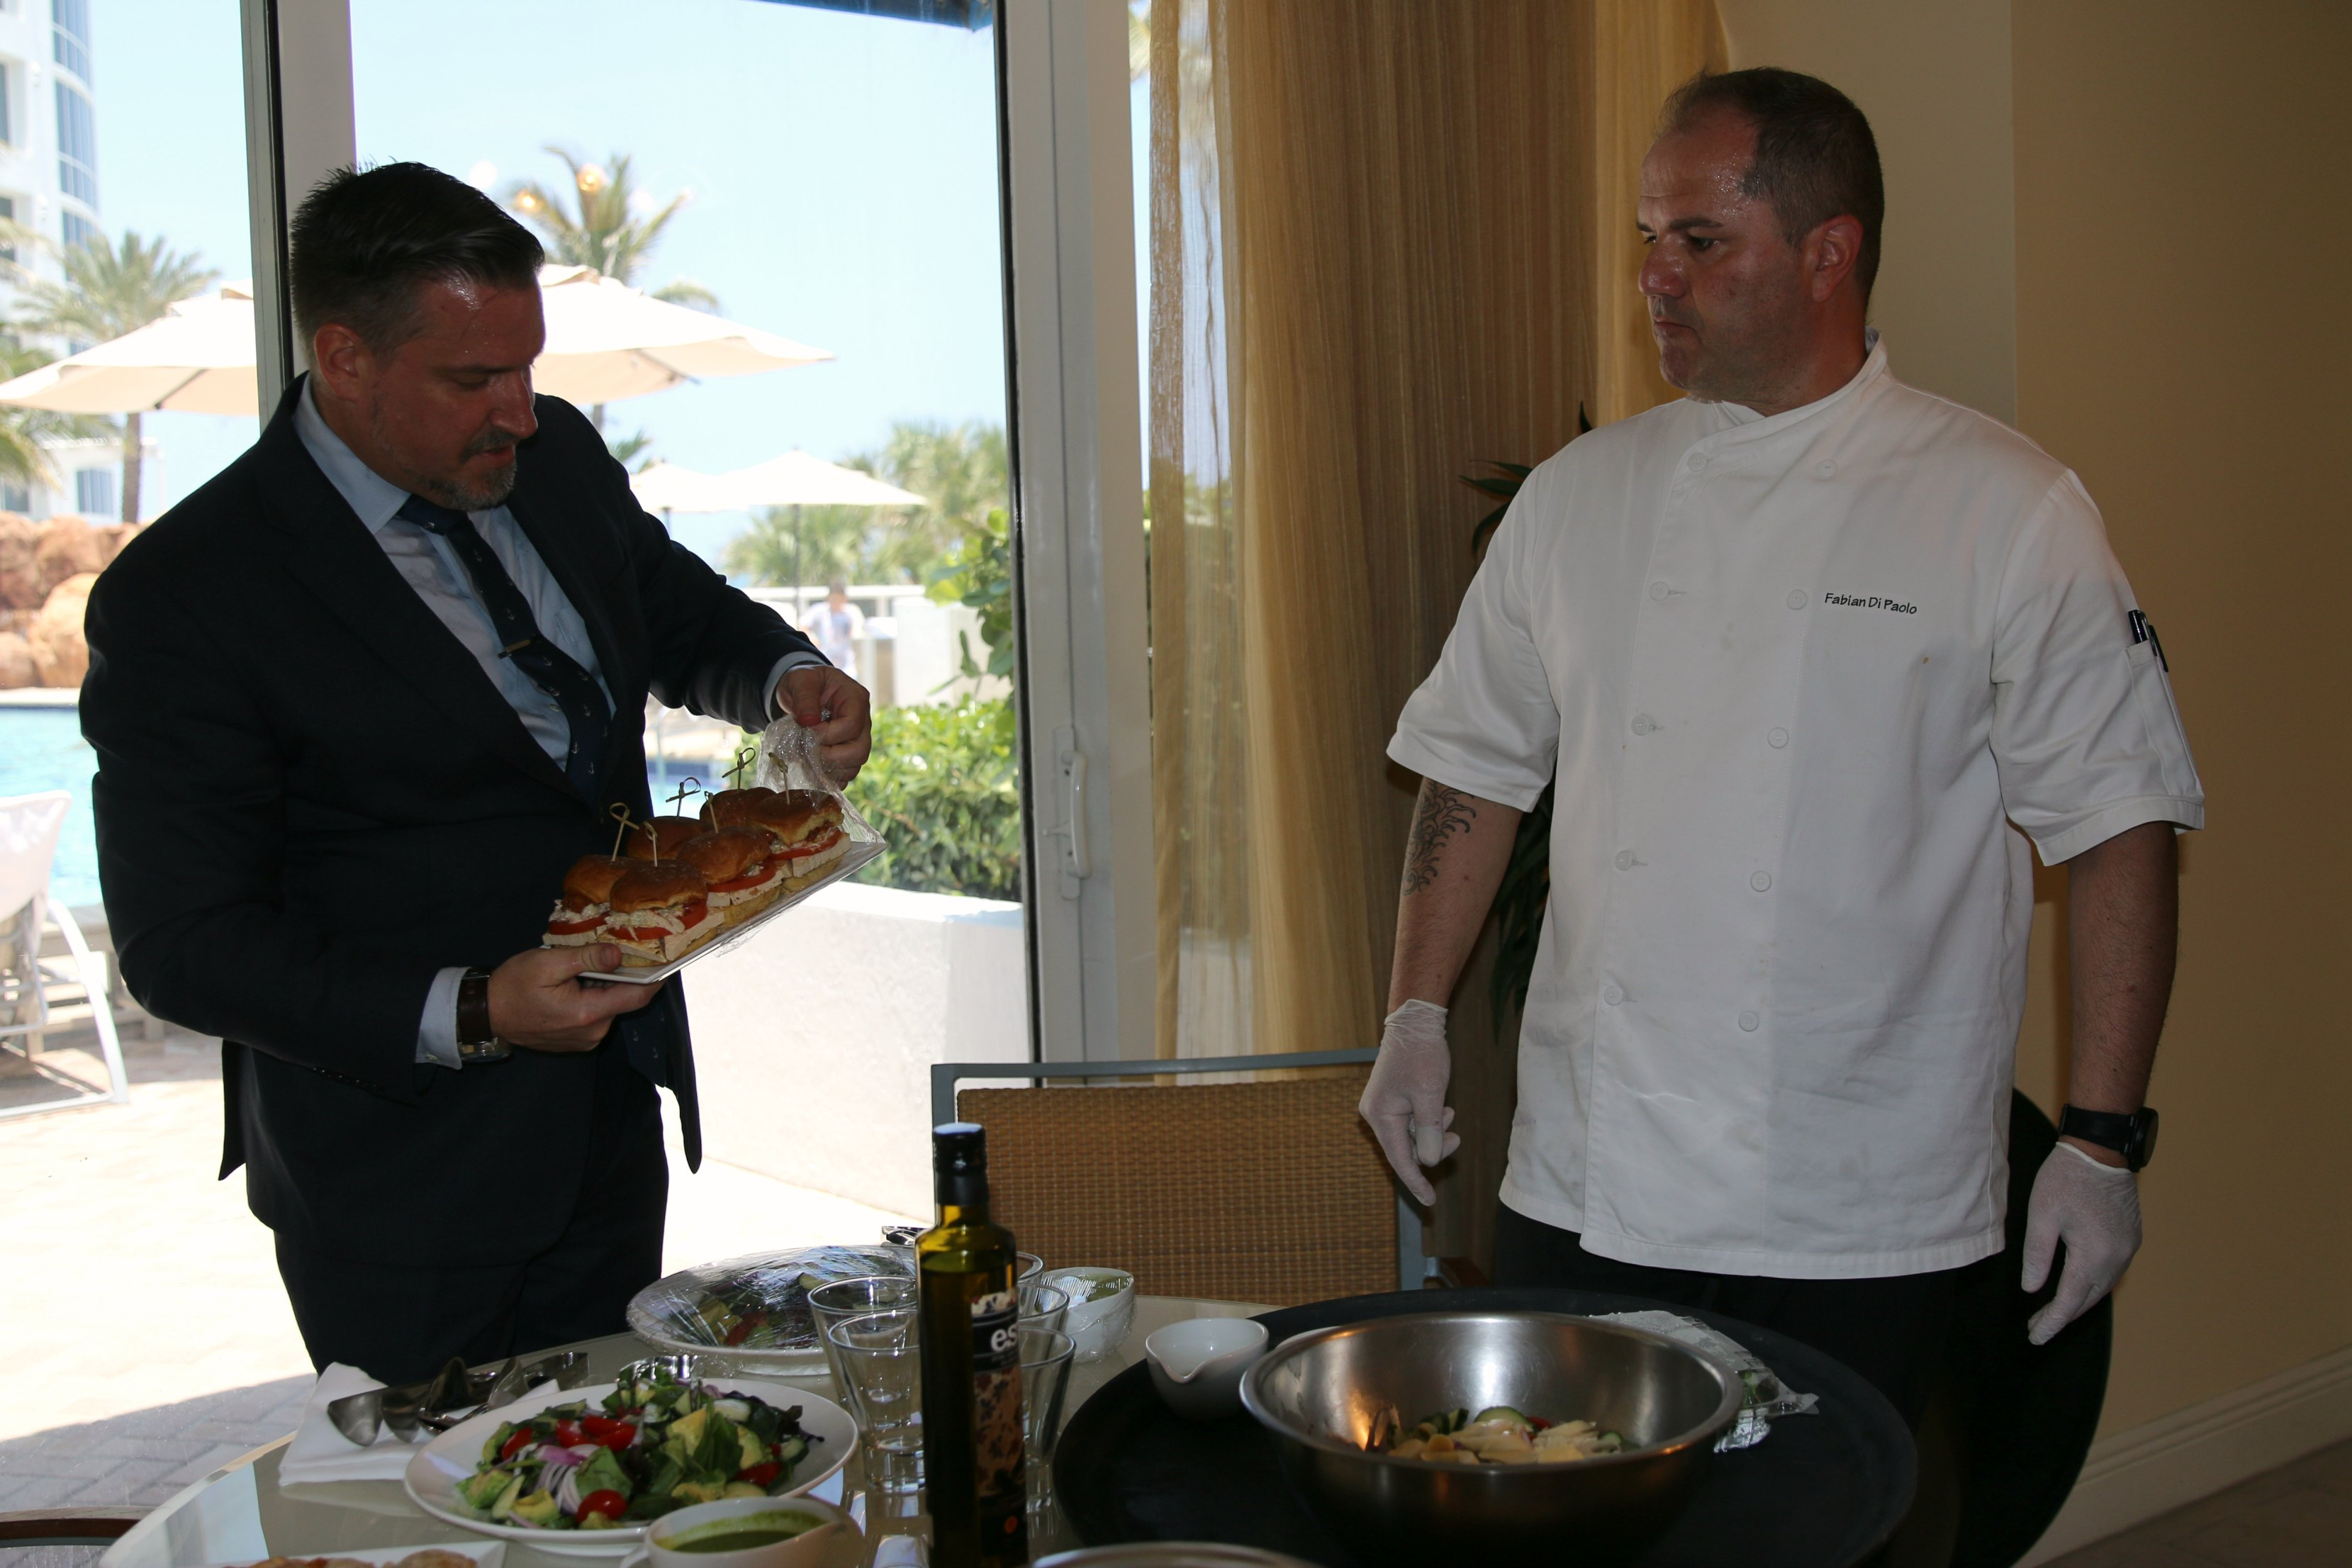 personal cooking in cabana